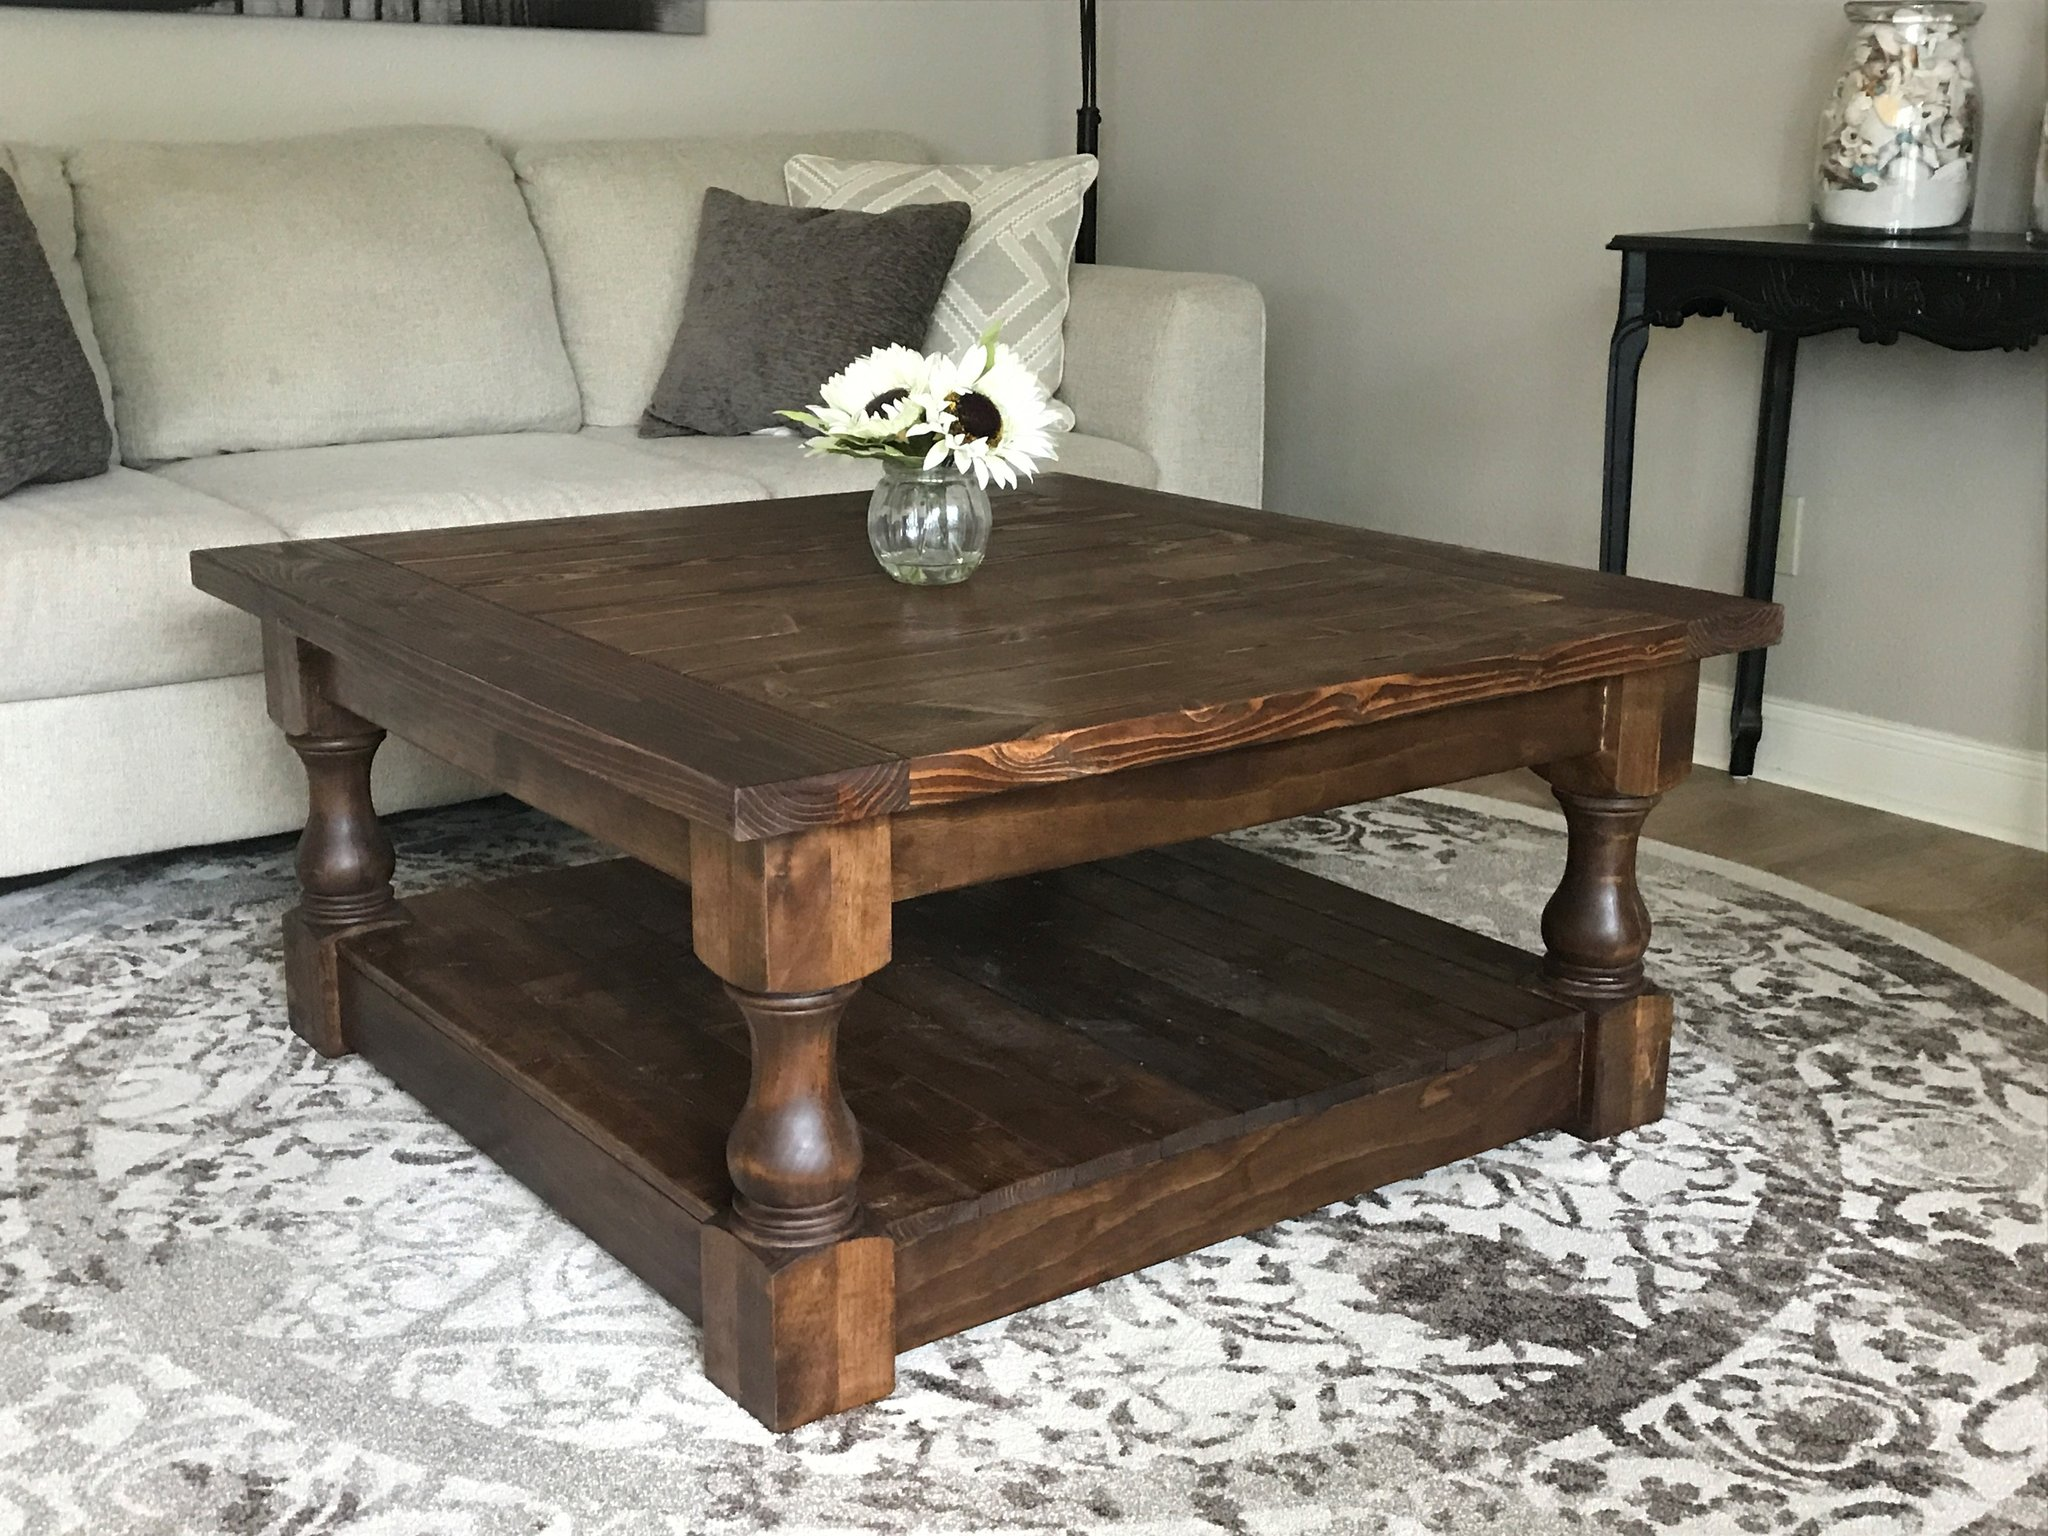 stained farmhouse style rustic coffee table img end tables beautiful night where ethan allen furniture made designer toronto cherry magazine plain wood kmart patio sets black high